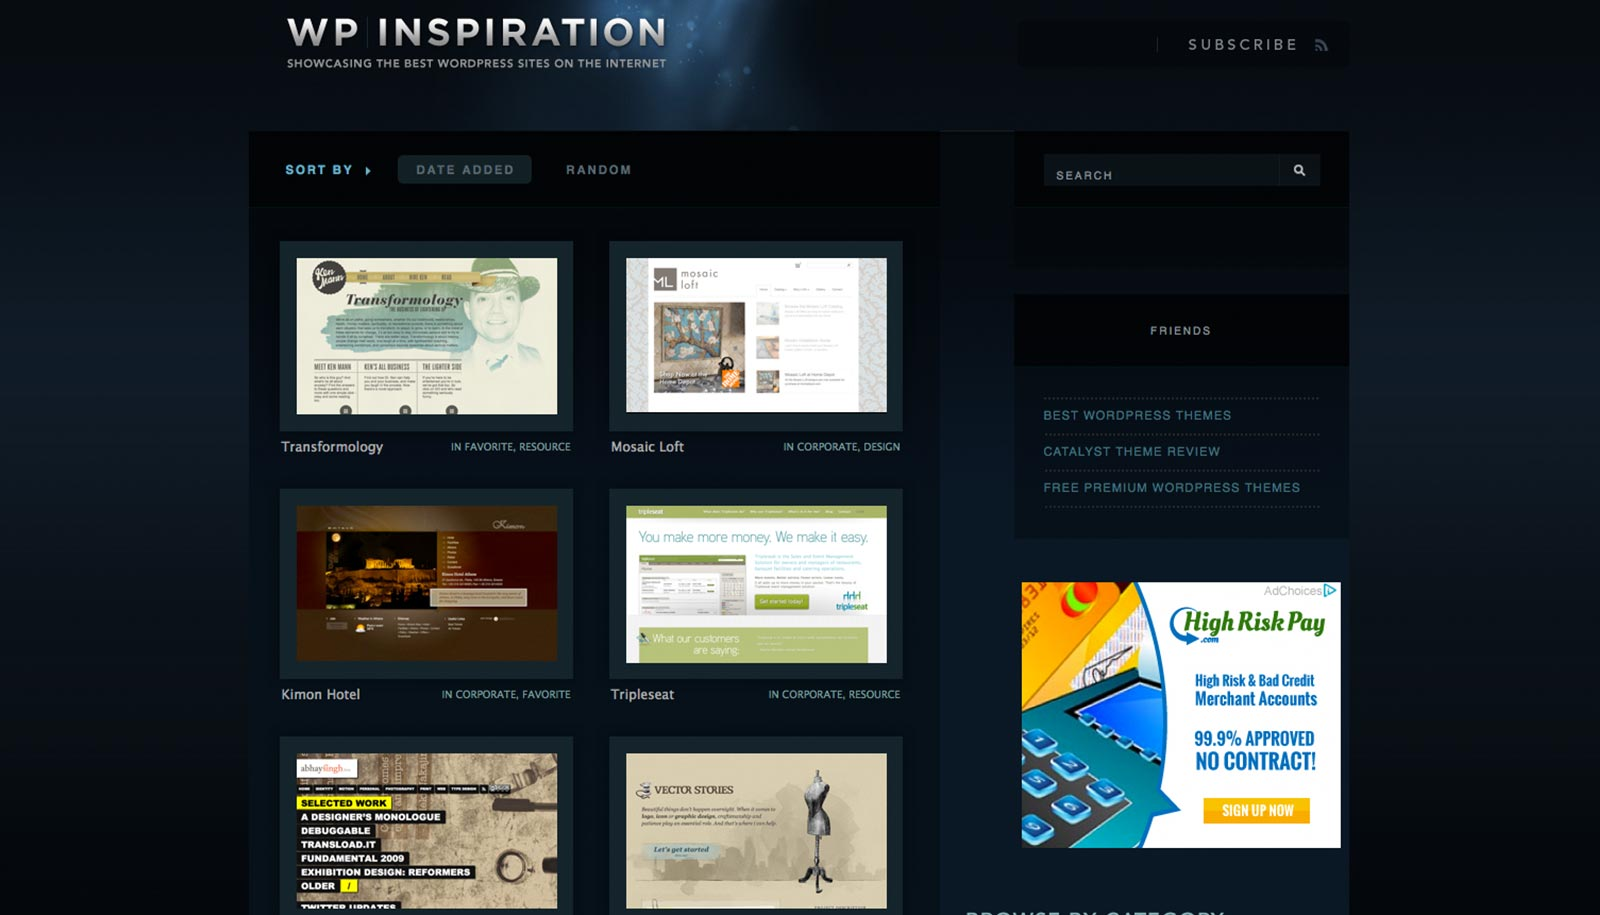 Wordpress design inspiration